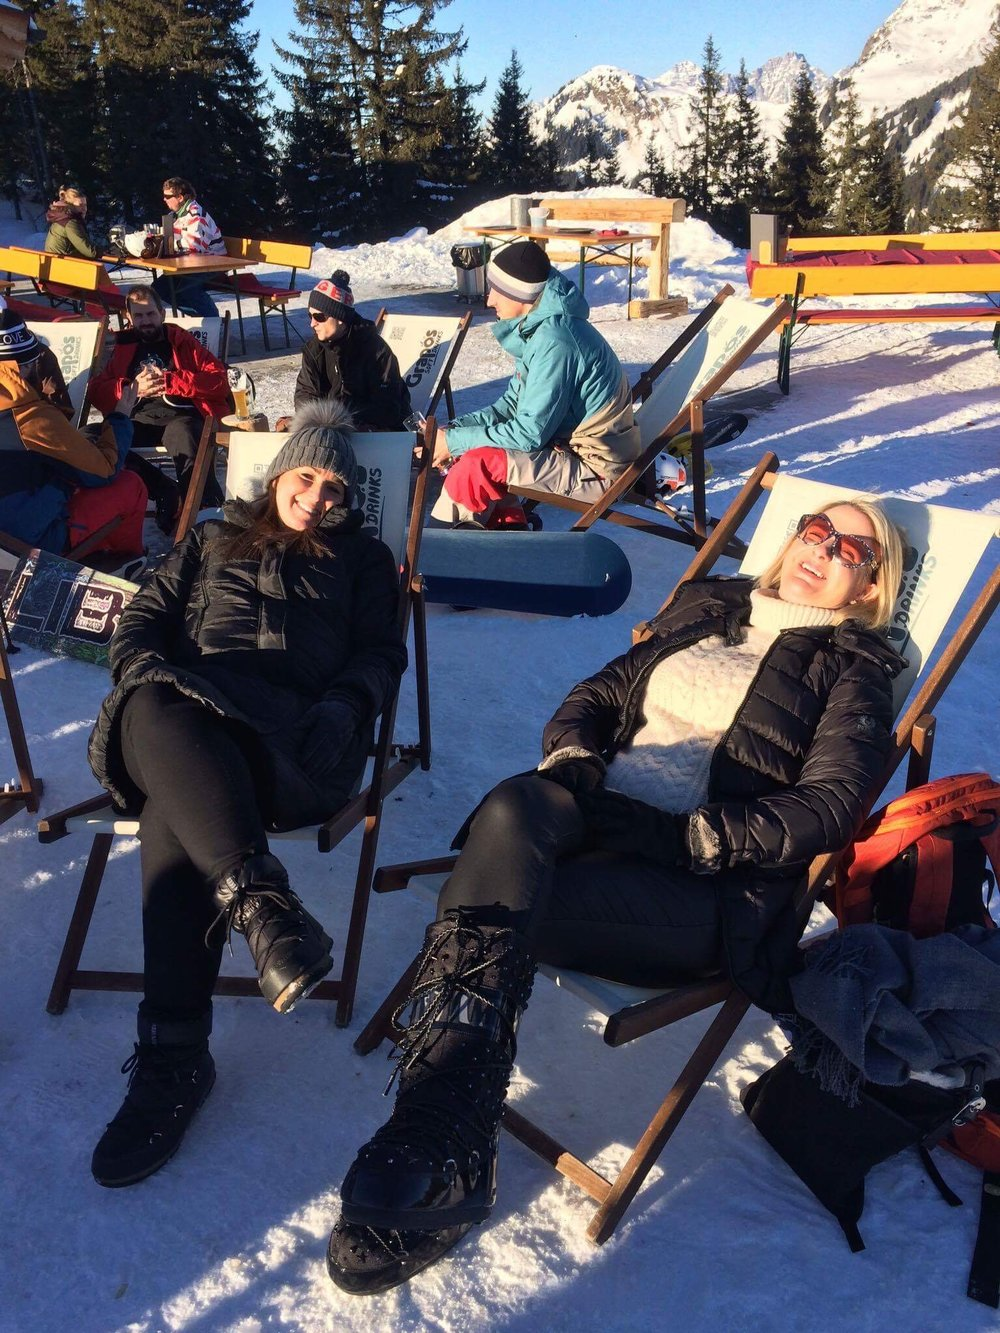 Face sunbathing at its finest. There's absolutely no reason not to Apres Ski just because you haven't skied hahahahahahahaha.